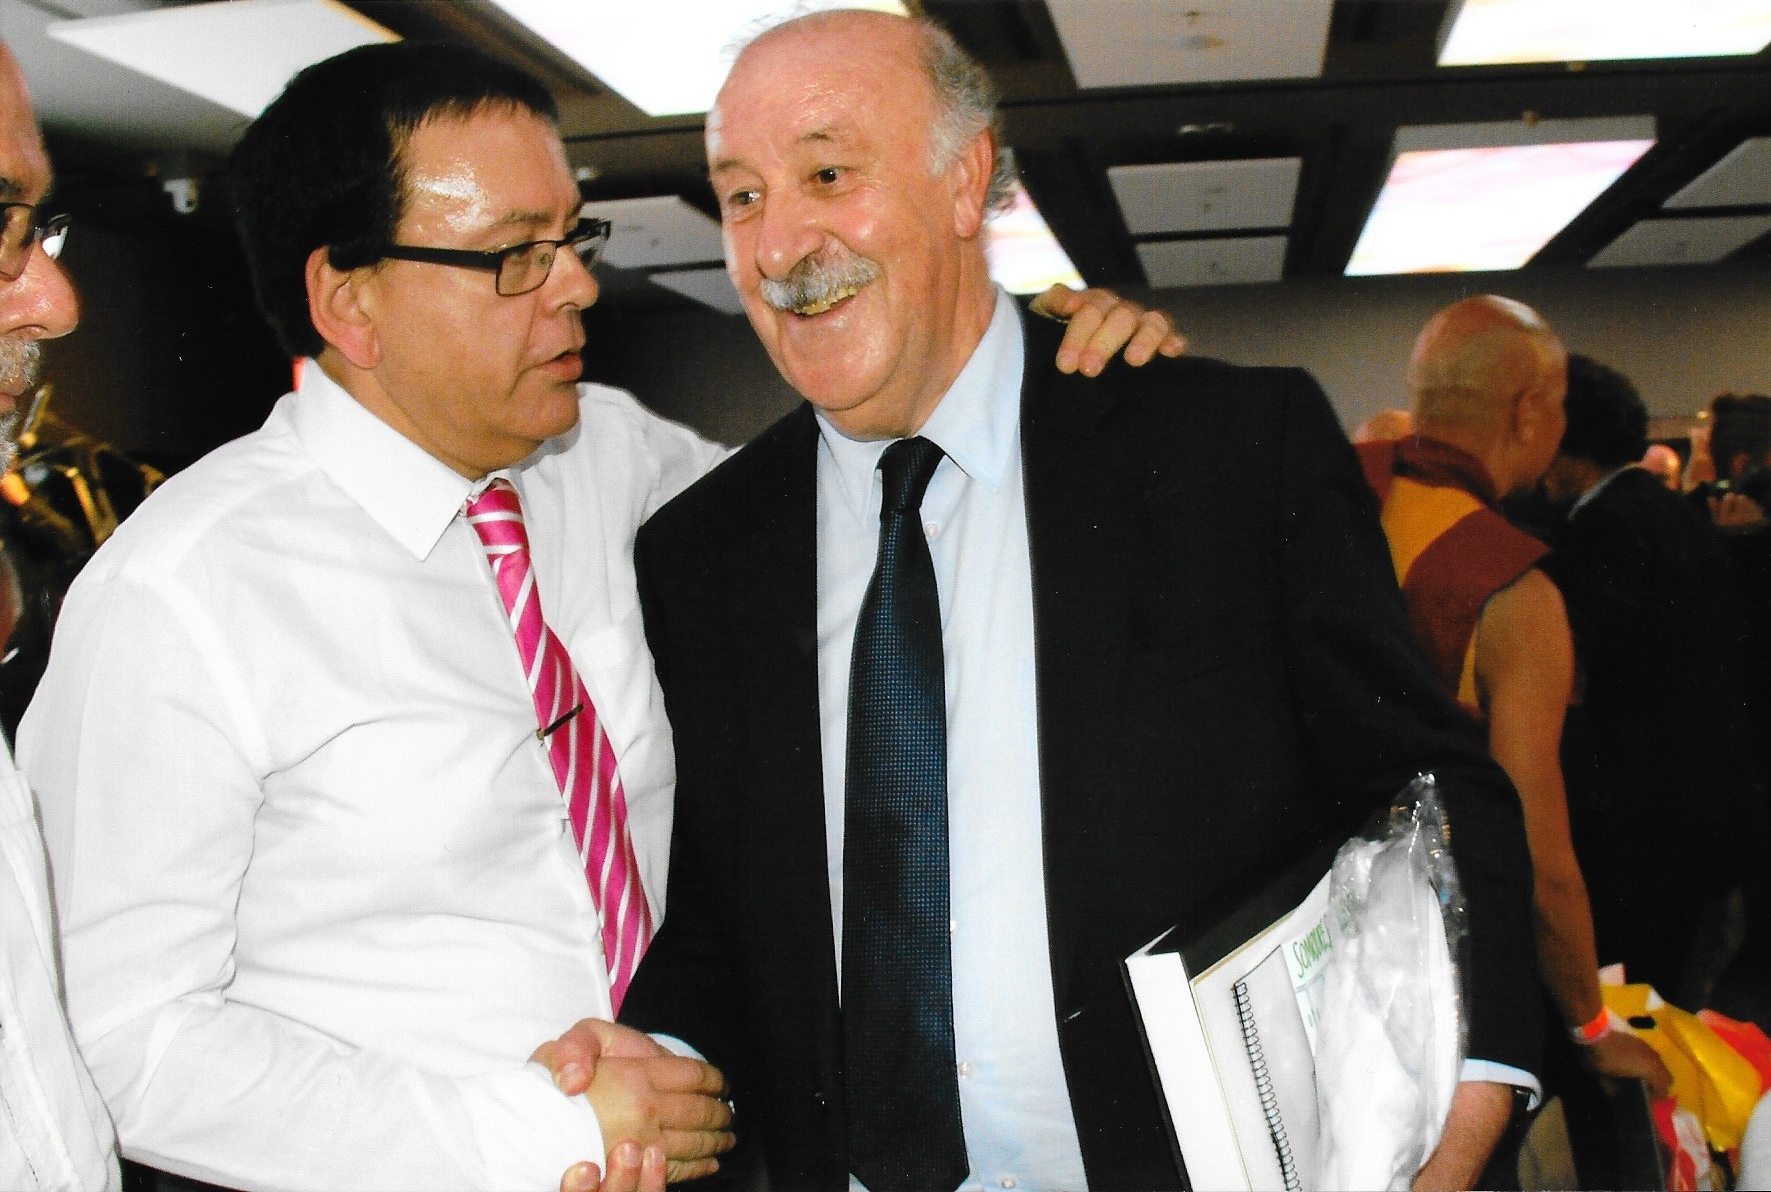 Manuel Romero & former Real Madrid coach and FIFA World Cup Spanish National team coach, Vicente del Bosque .